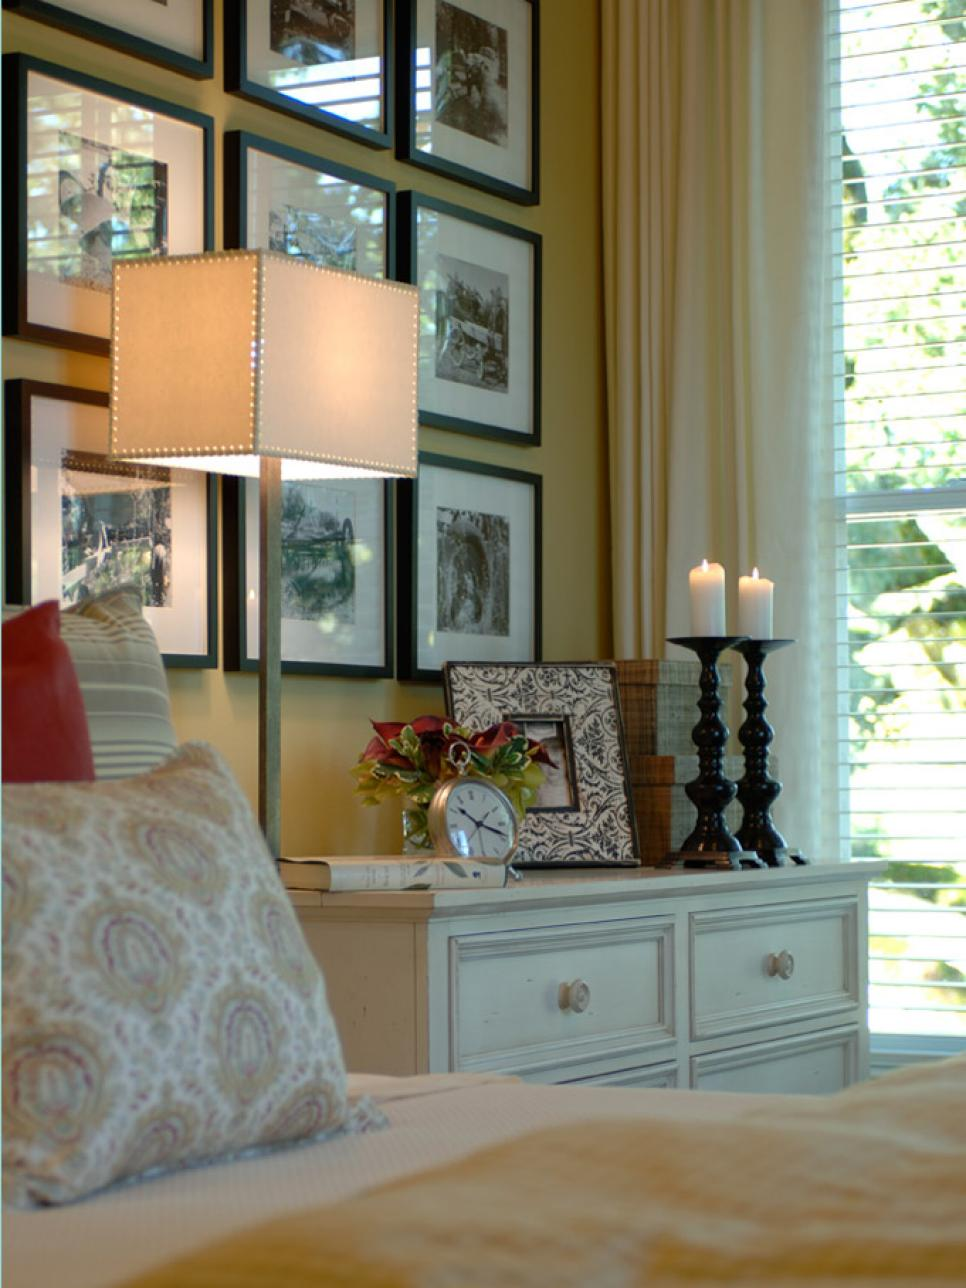 10 ways to display bedroom frames hgtv for Bedroom picture ideas